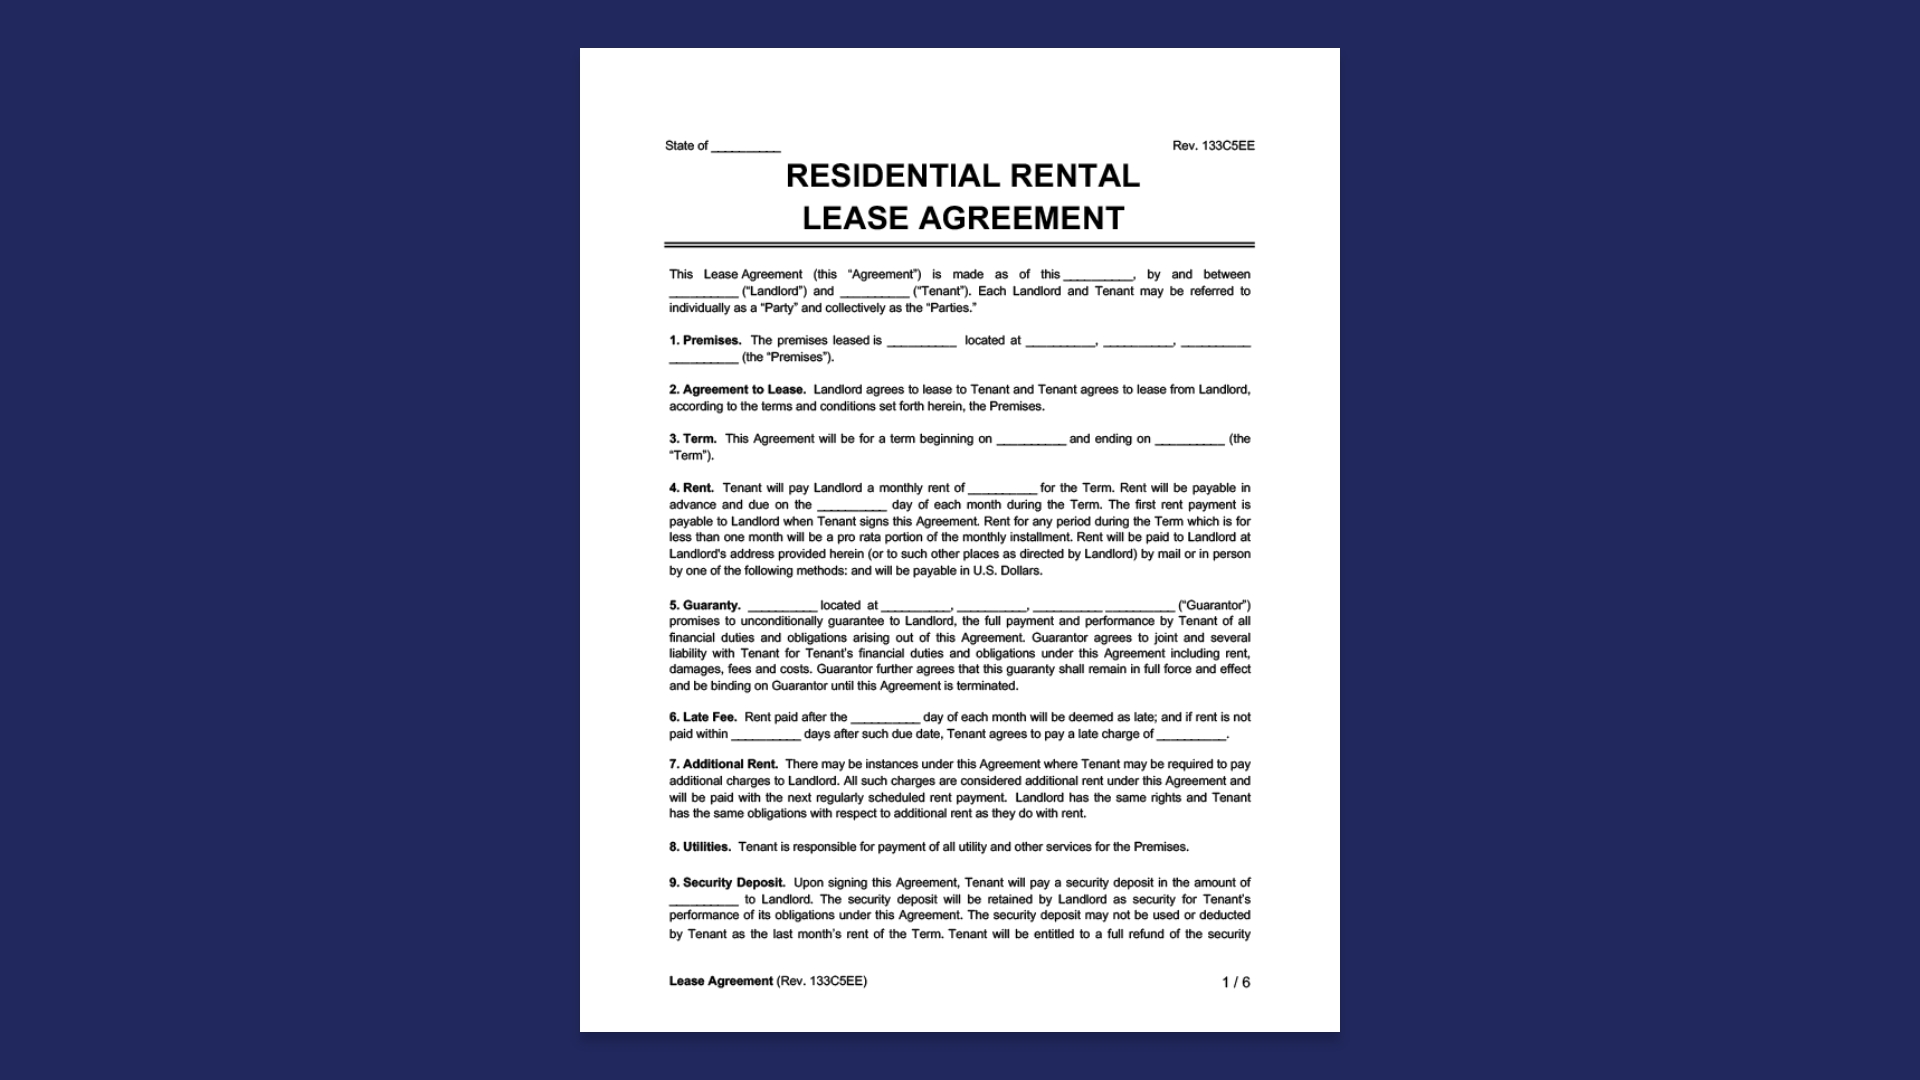 Lease Agreement Image Sample